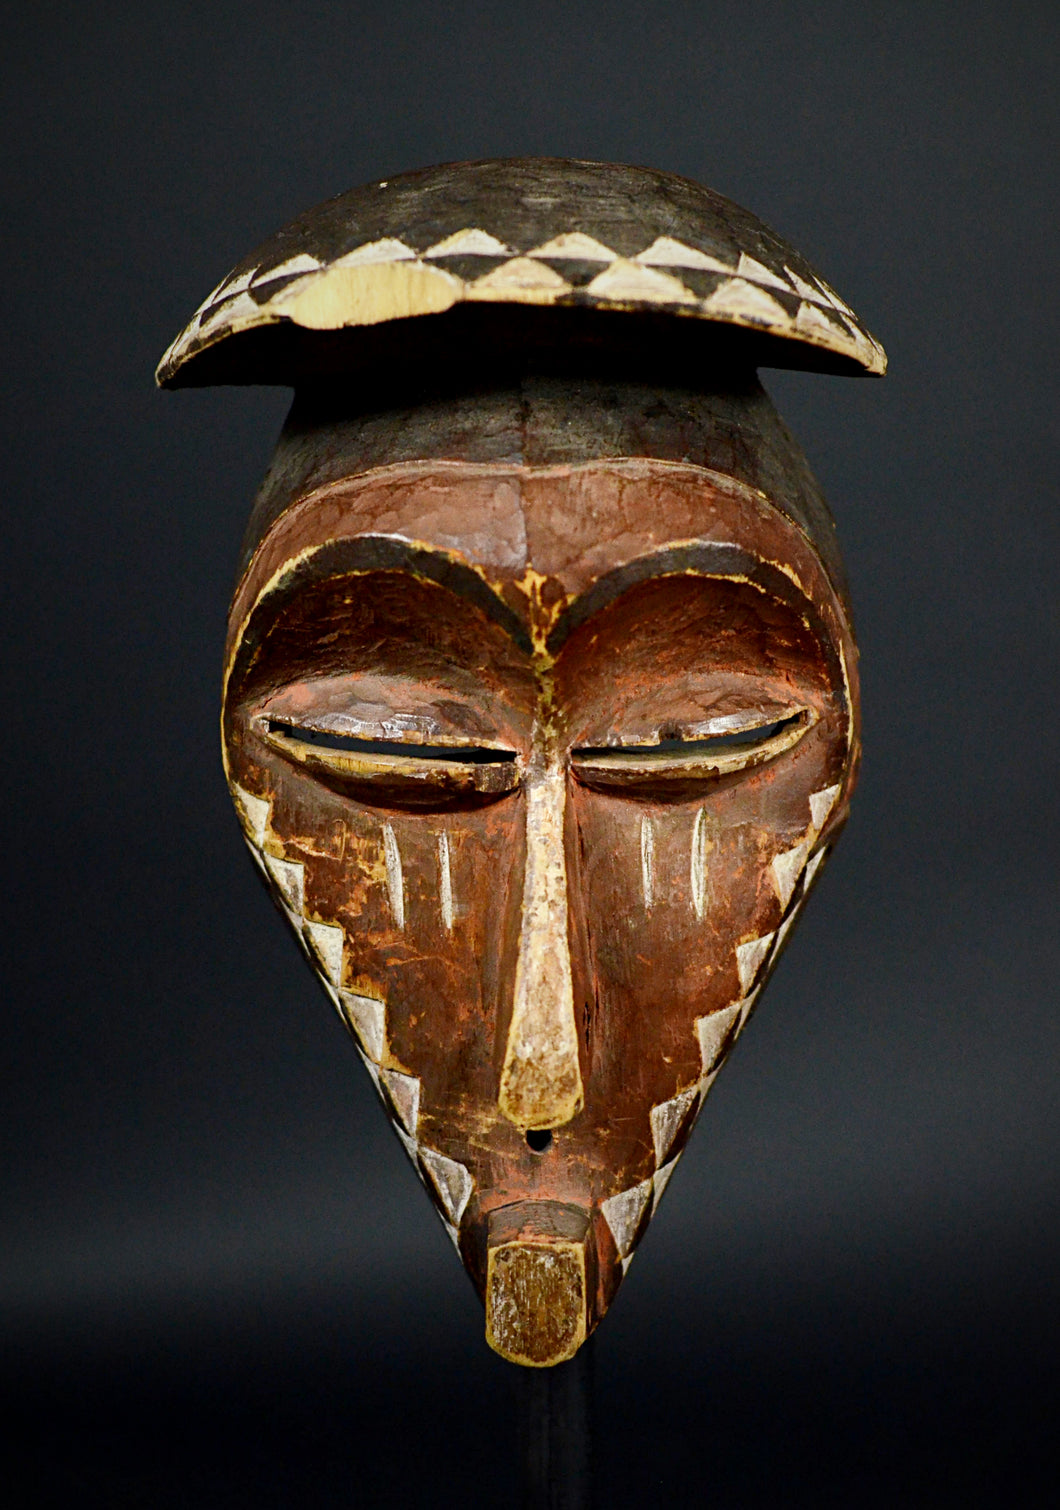 Eastern Pende Kasai mask. D.C.R.